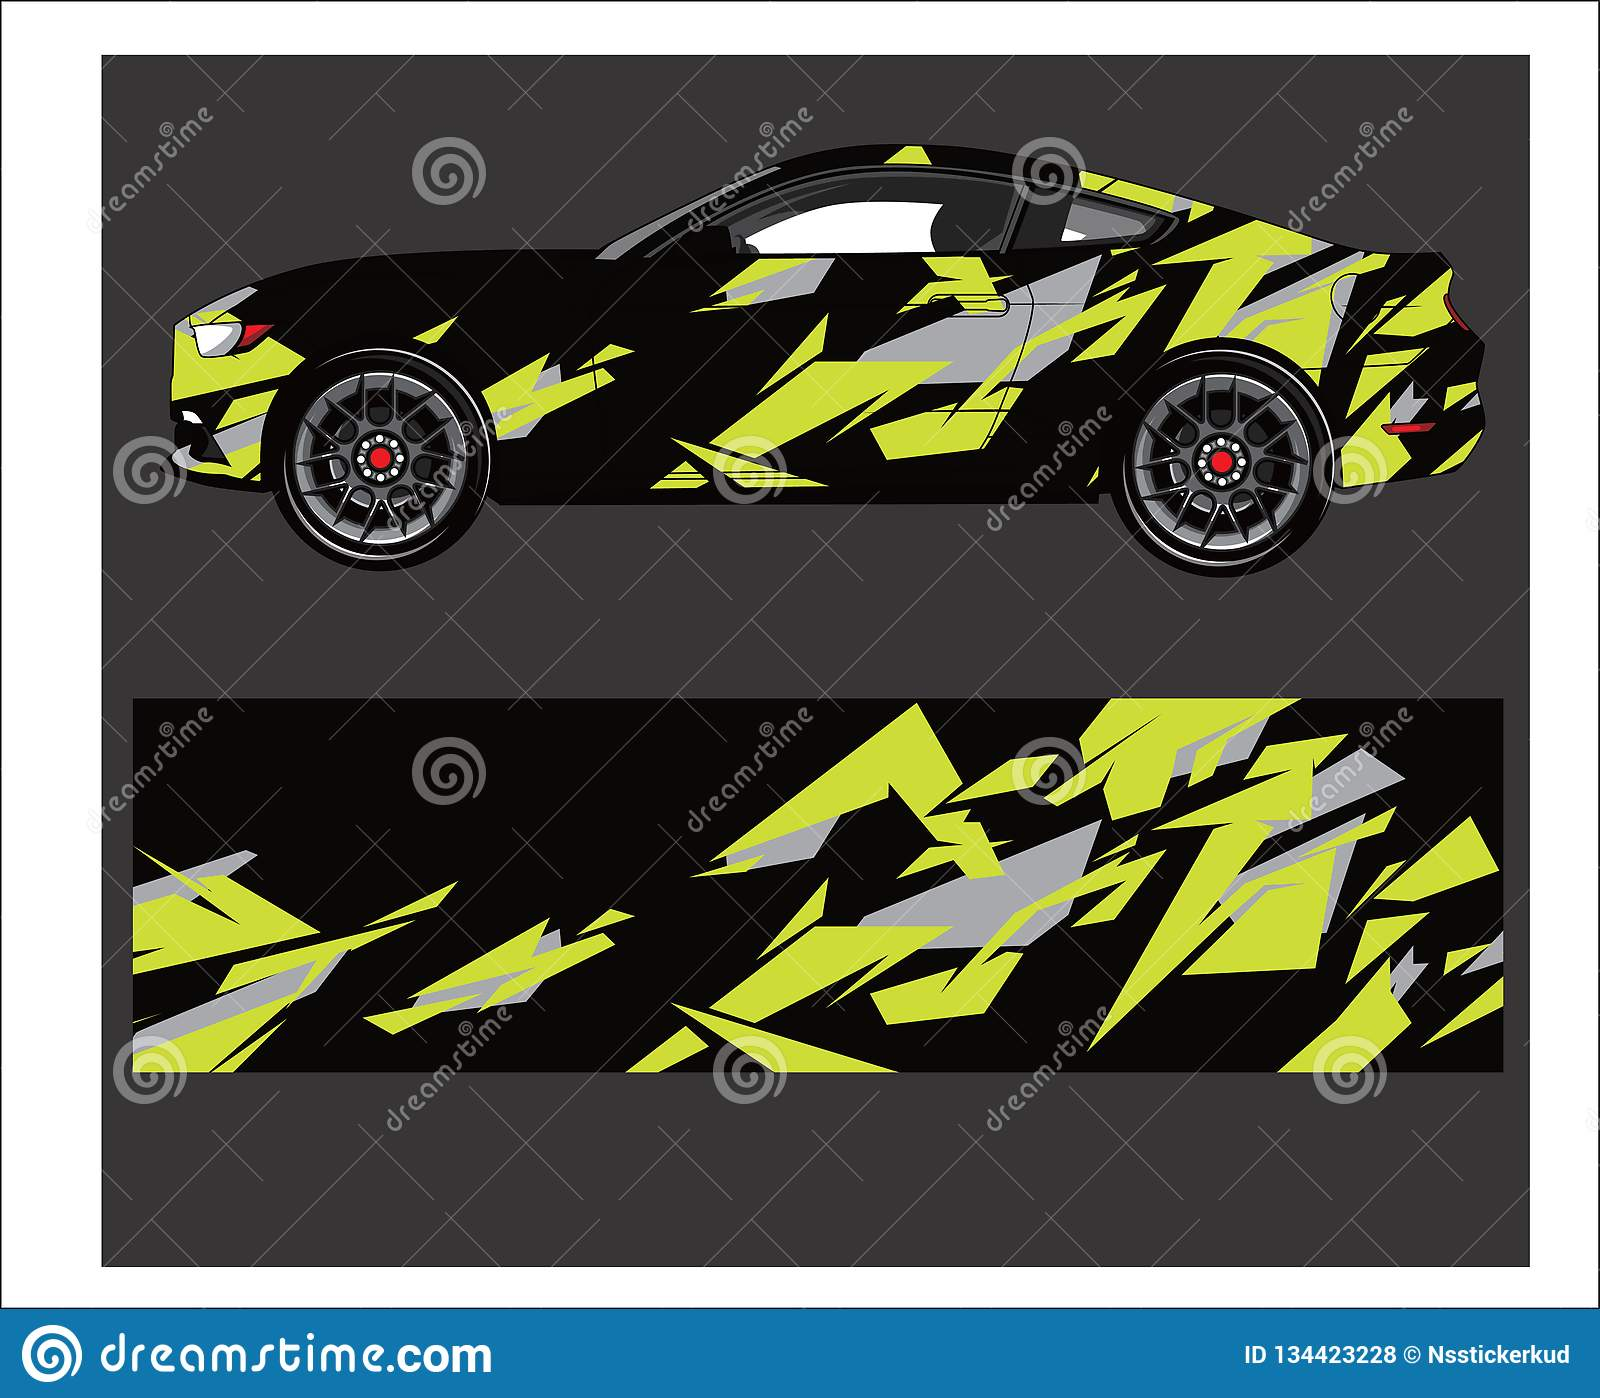 Car and vehicle abstract racing graphic kit background for wrap and vinyl sticker